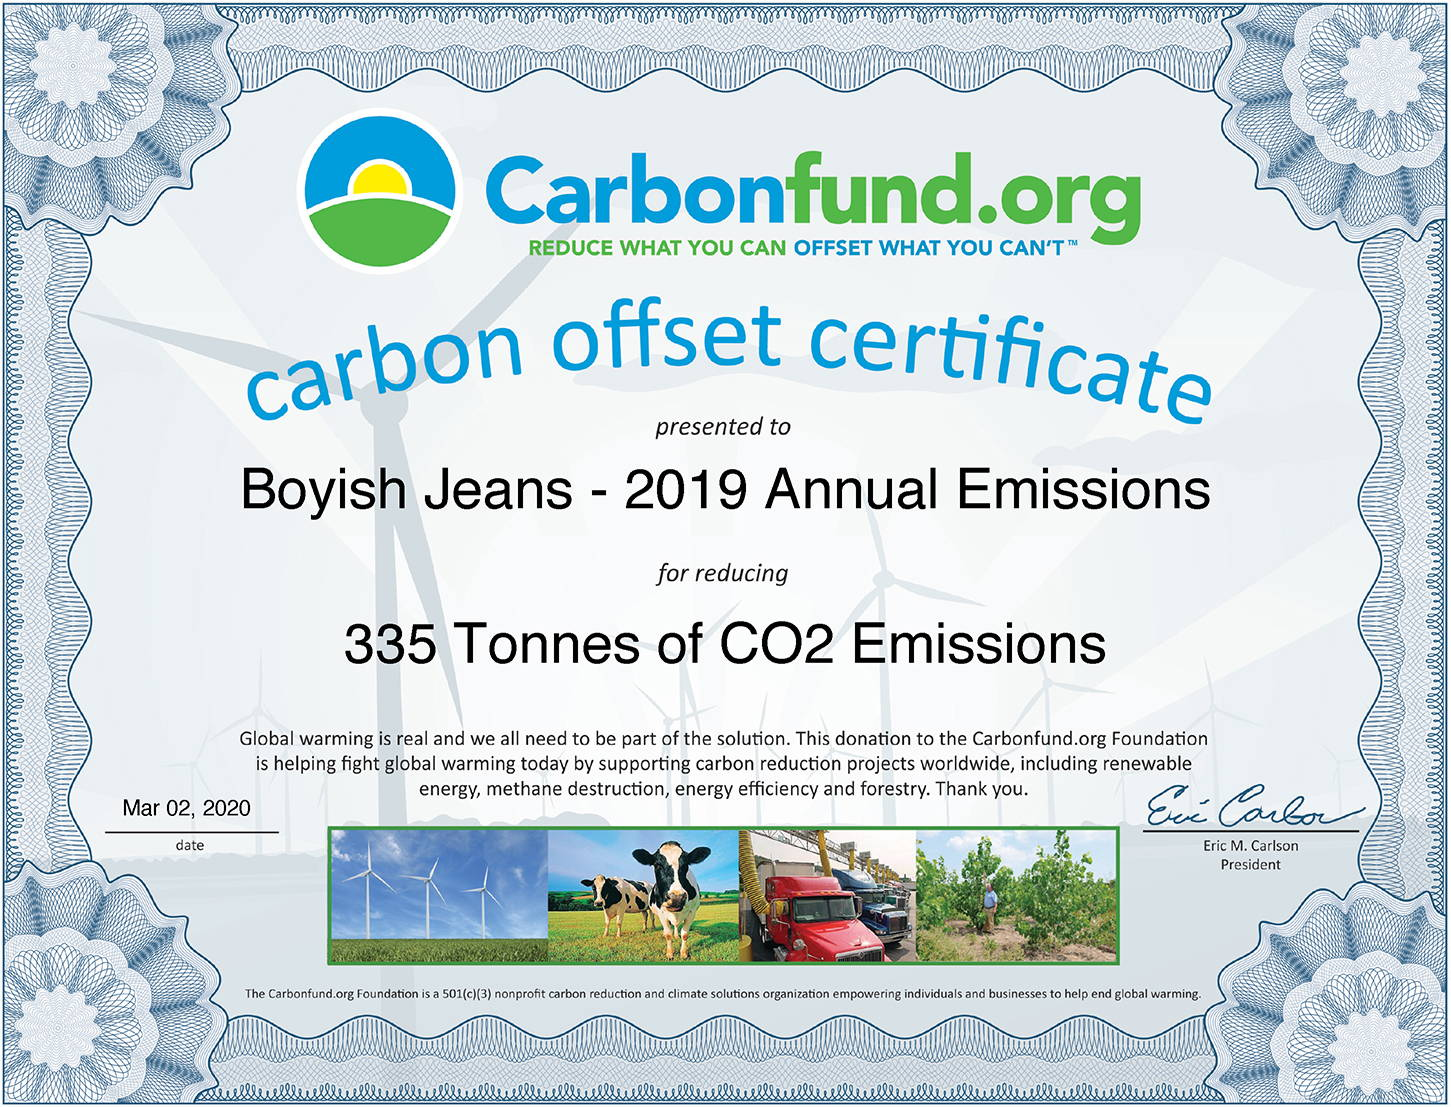 Carbonfund.org - Boyish Jeans carbon offset certificate - 2019 Annual Emissions - 335 Tonnes of CO2 Emissions